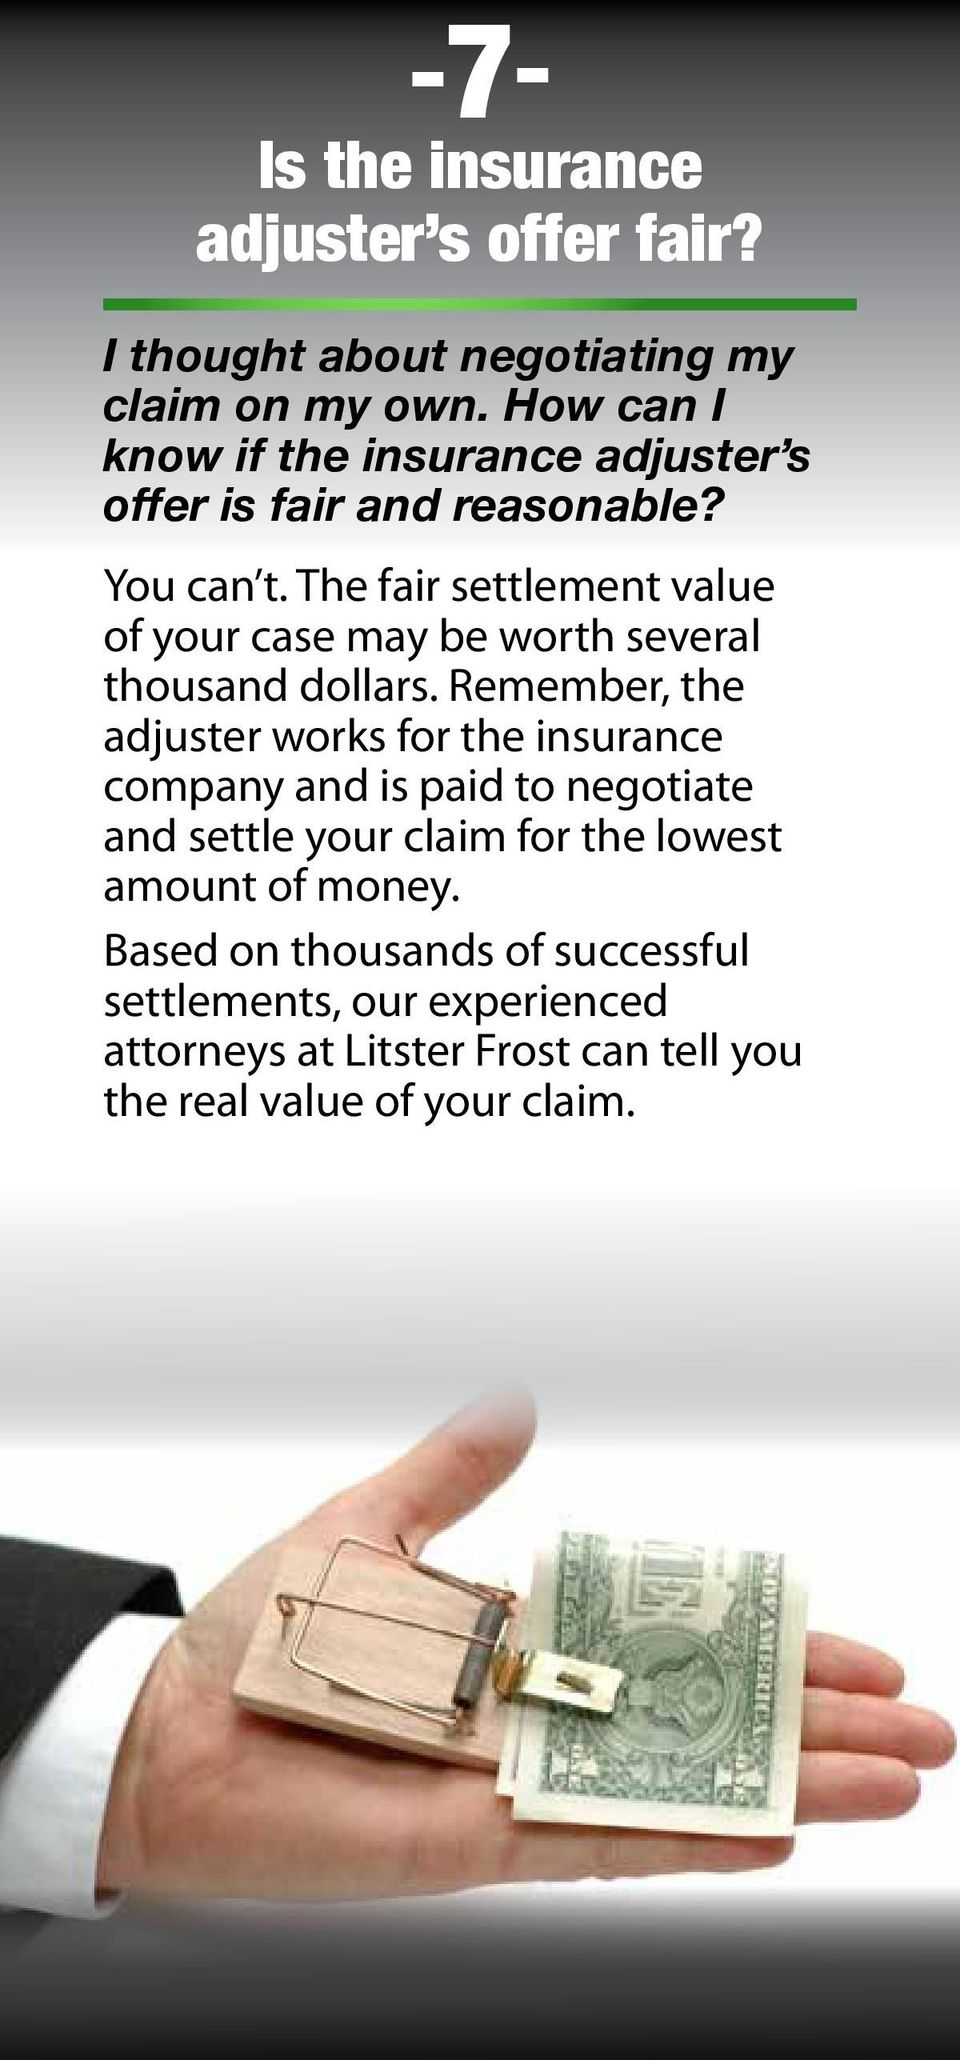 The fair settlement value of your case may be worth several thousand dollars.